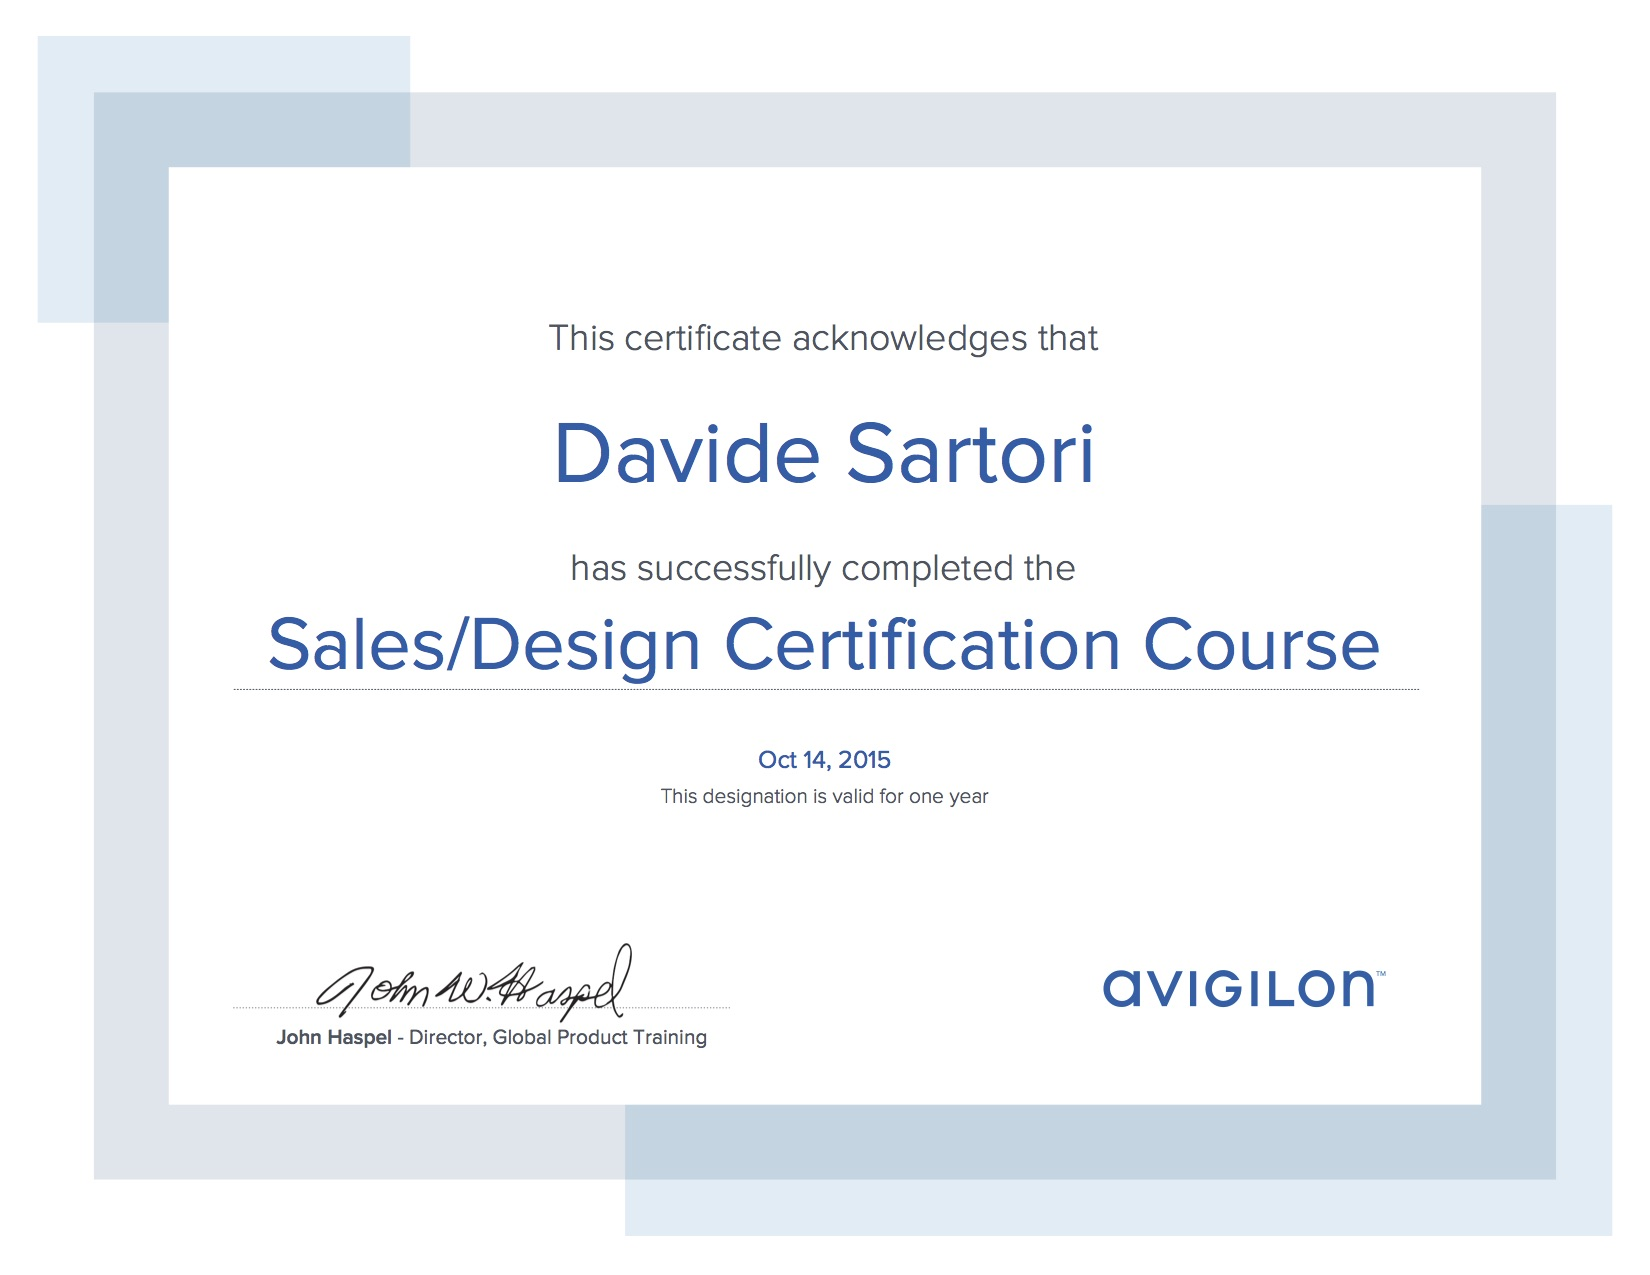 Avigilon Sales Design Certification